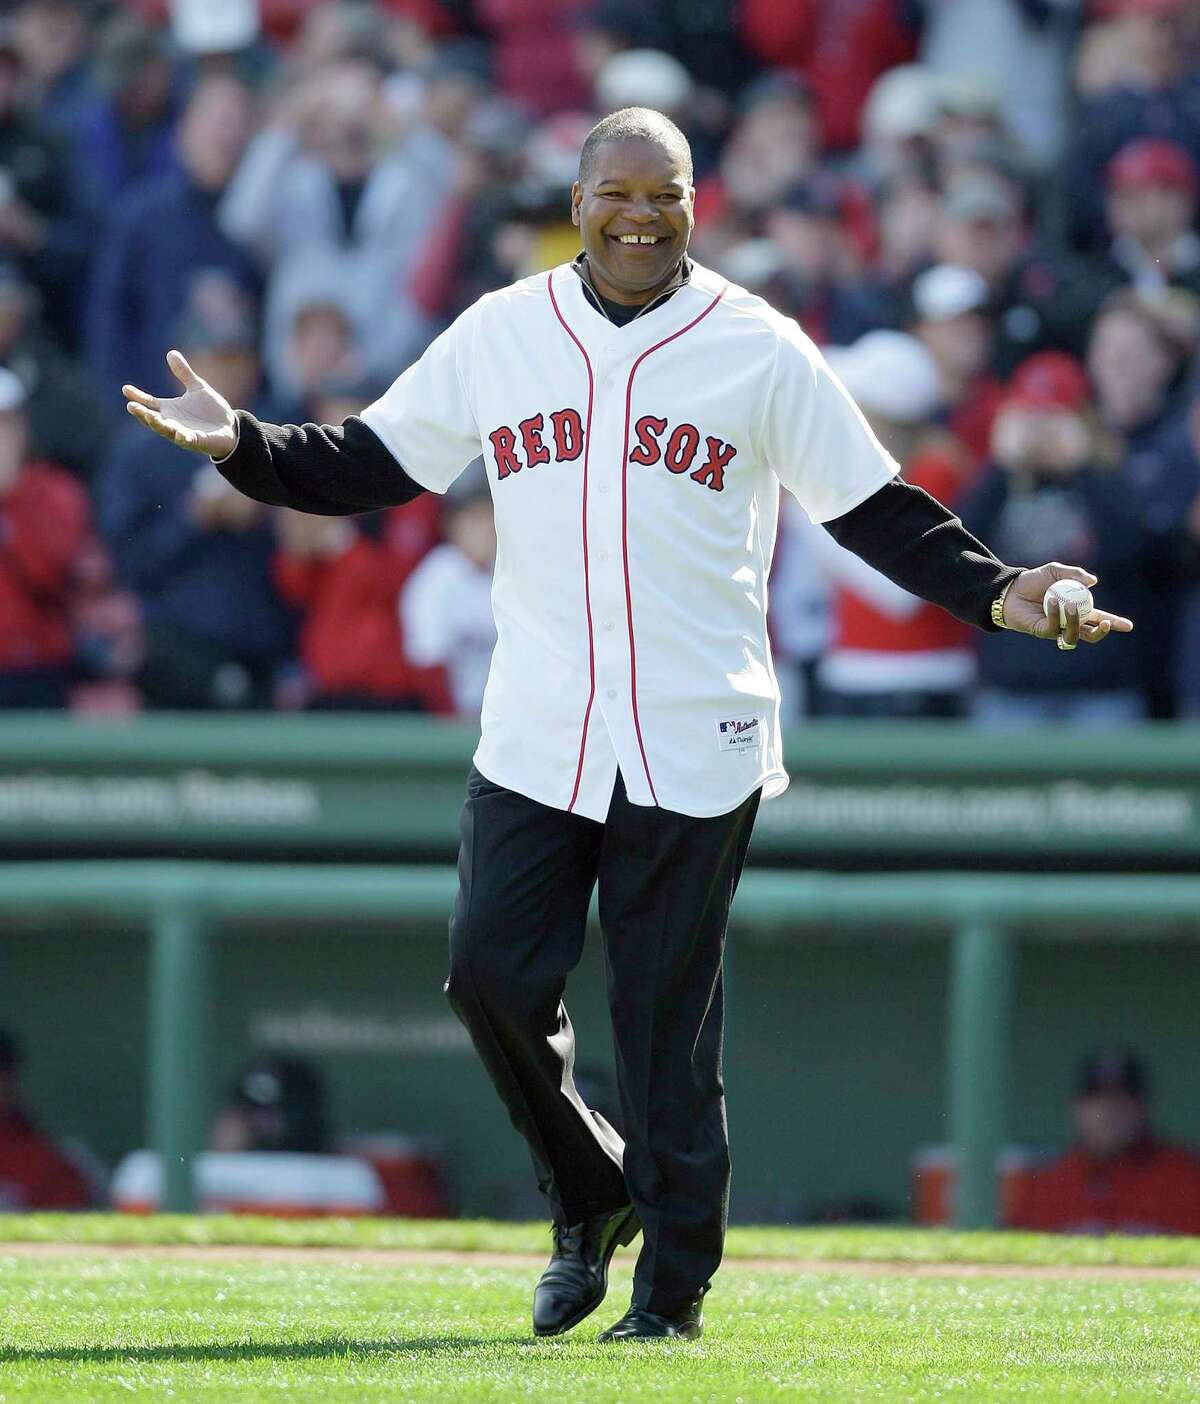 Former Boston Red Sox outfielder Dave Henderson died Sunday after suffering a massive heart attack. He was 57.